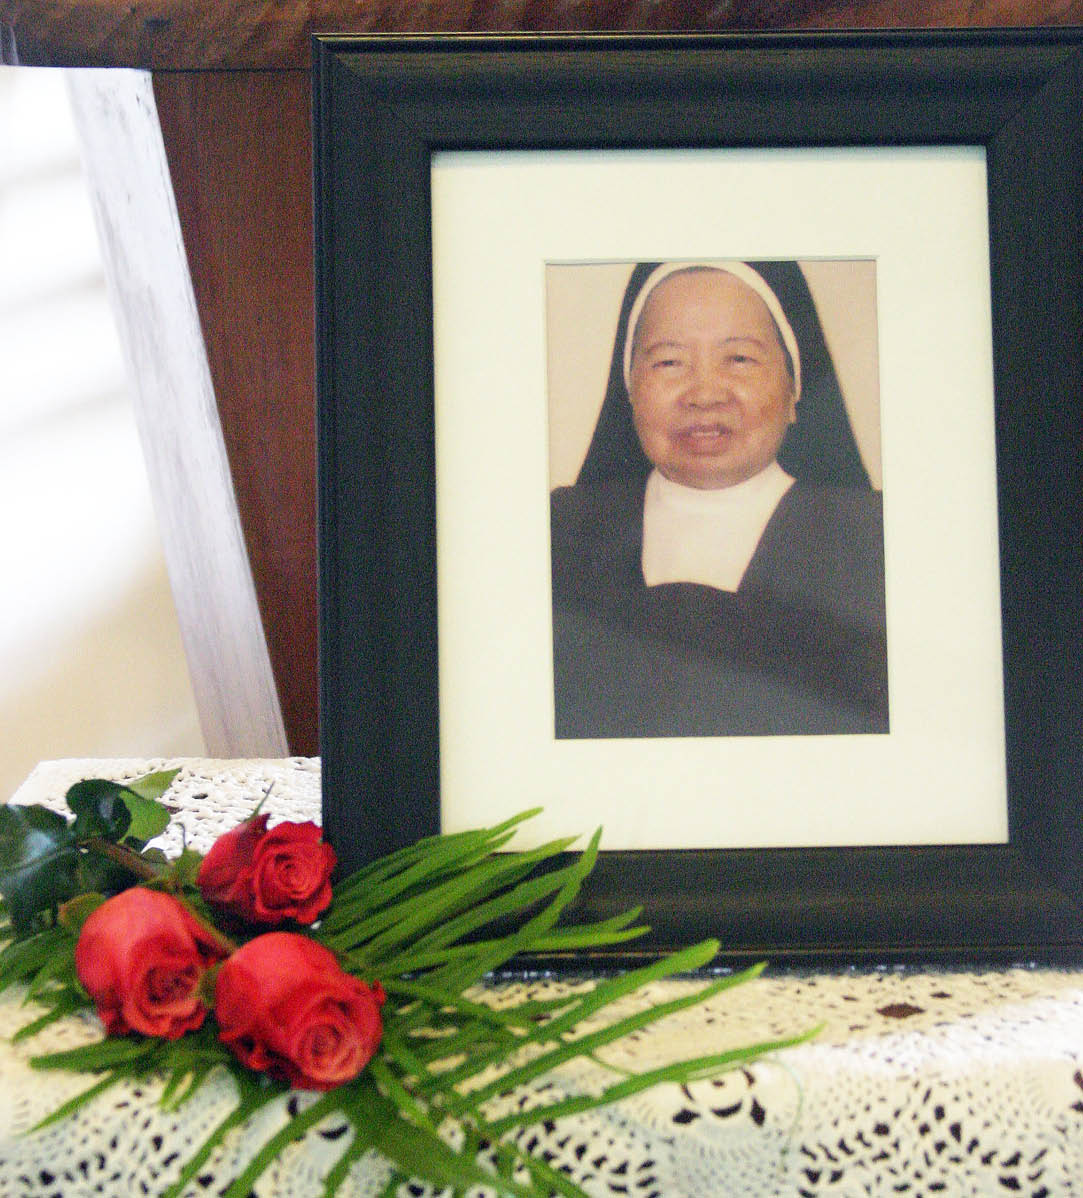 SISTER MARIE TANG OF THE CHILD JESUS | 1924-2018 - Hawaii